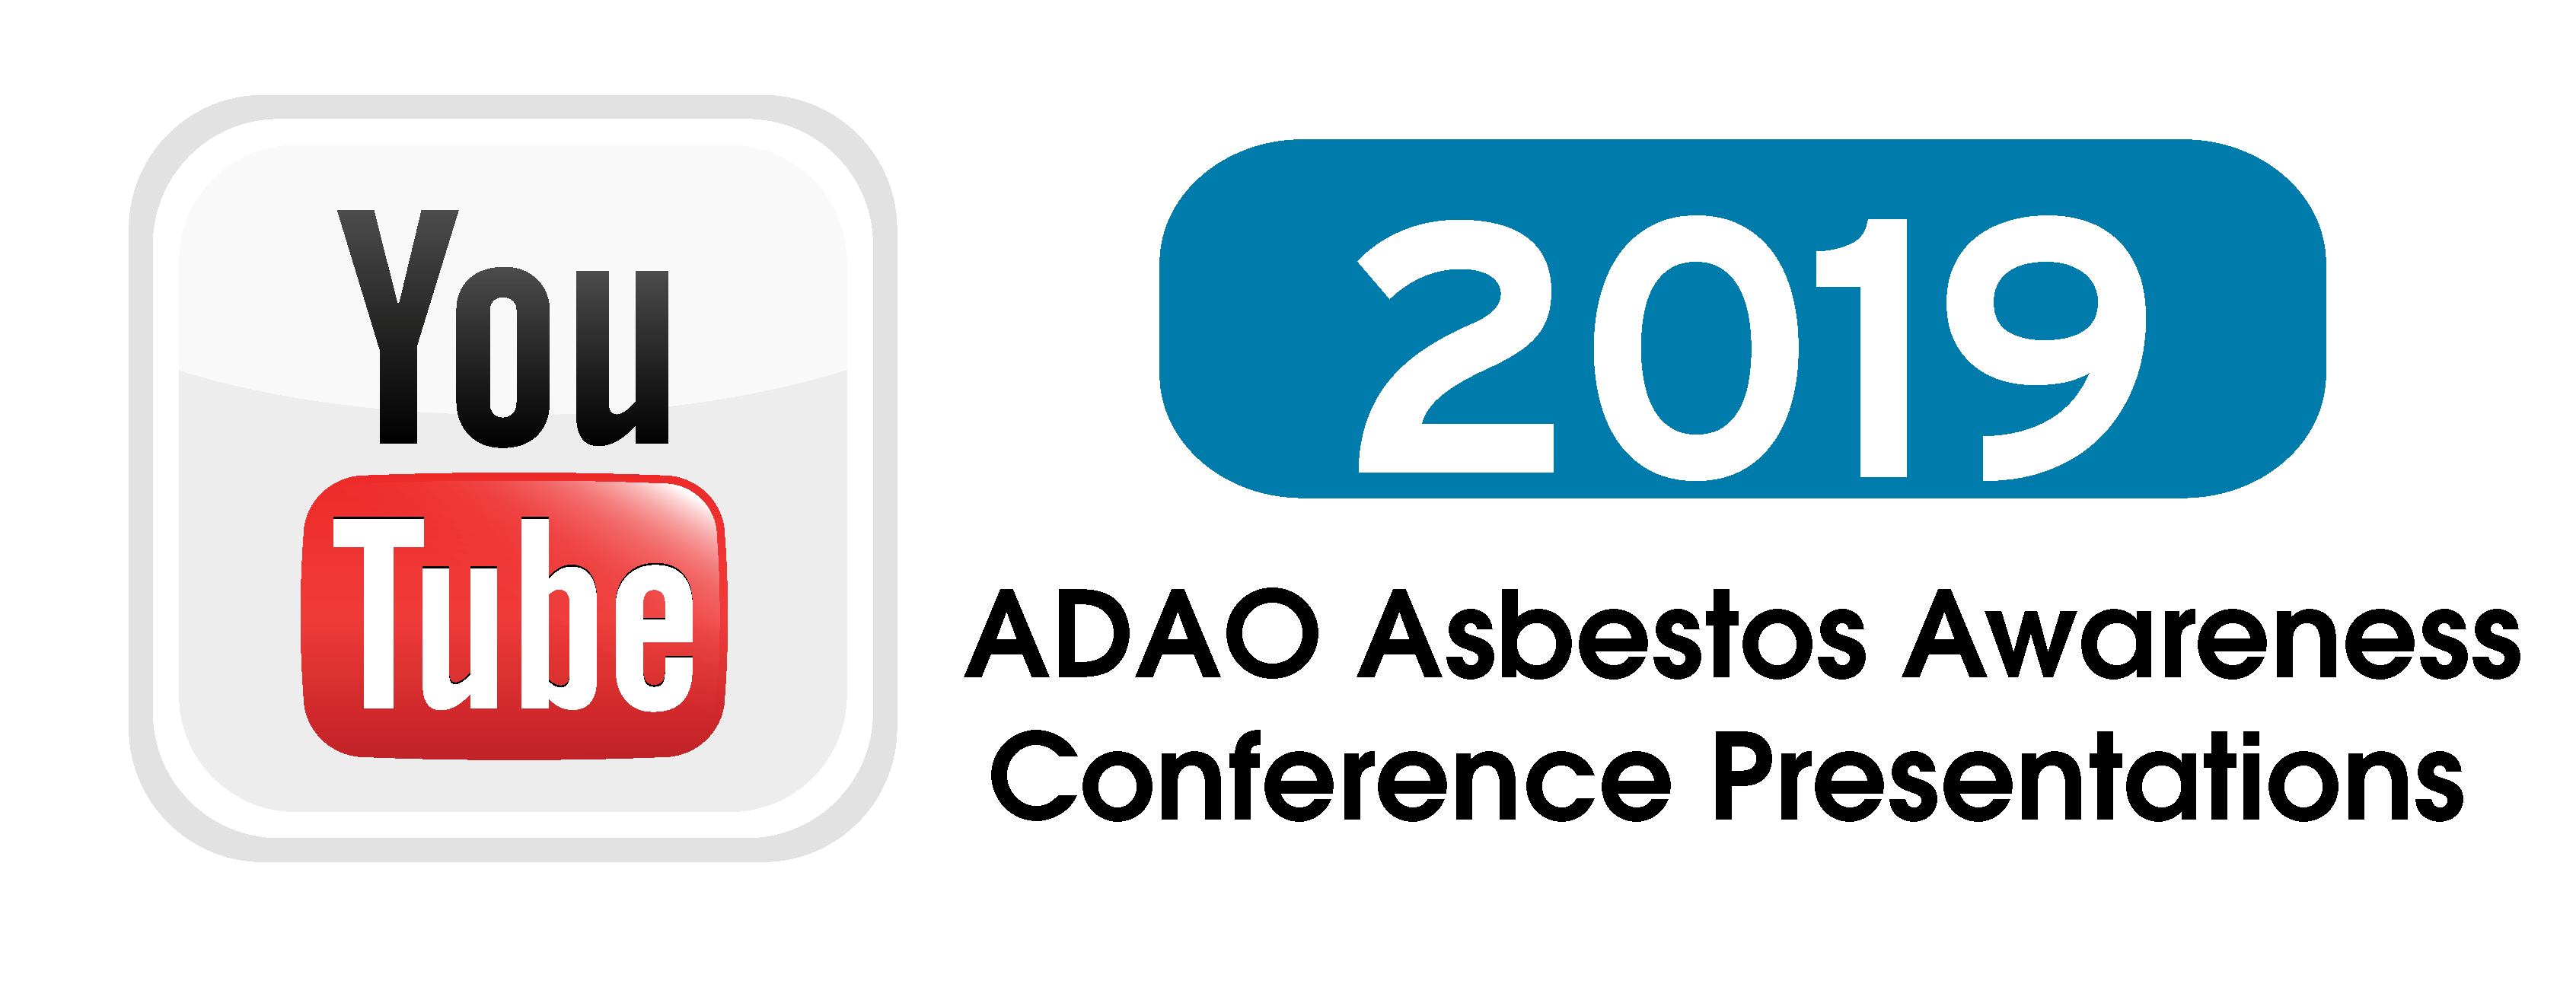 2019 ADAO Asbestos Awareness and Prevention Conference Agenda with